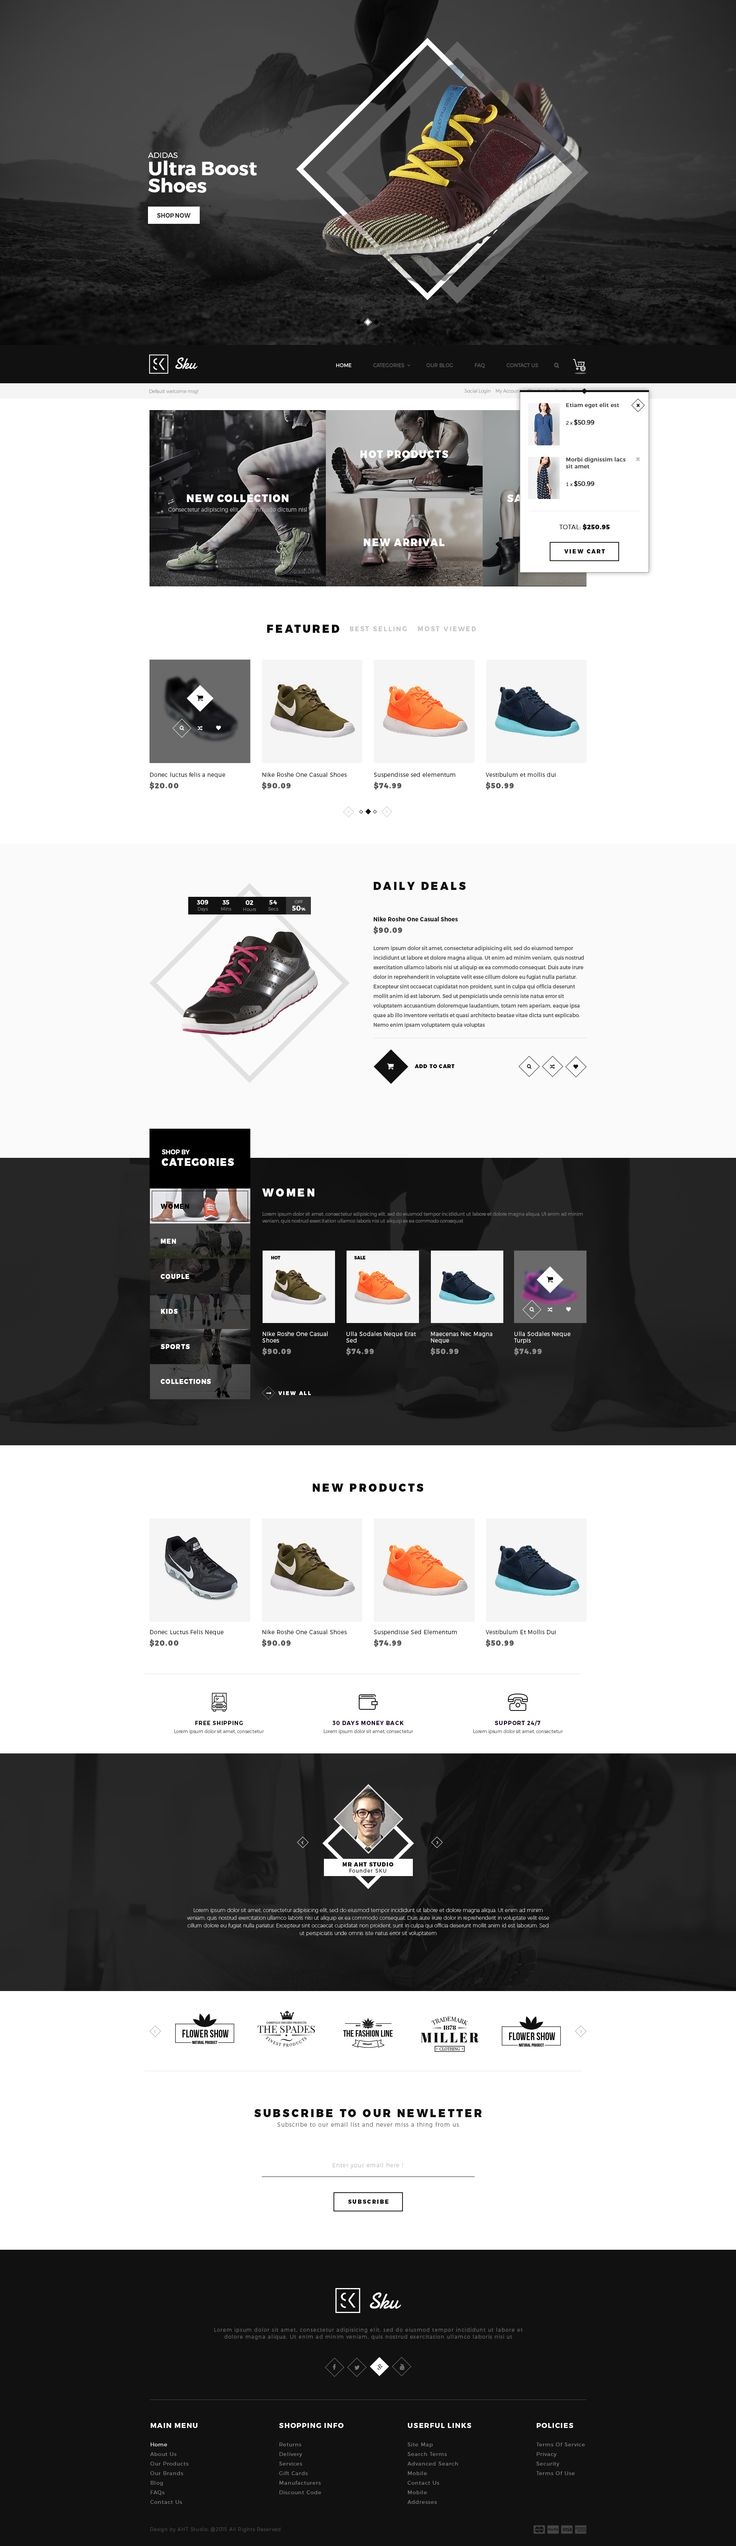 Bold & Unique design SKU is not only designed with unique & modern design but also built based on MGS Frontend builder theme and tons of useful extensions. So, SKU certainly meets & fits any kind of e-commerce websites which you can think of. #magento #template #theme #fashion #multipurpose #shop #shoes #accessories #unique http://themeforest.net/item/sku-multipurpose-magento-theme/14001777?ref=4mua